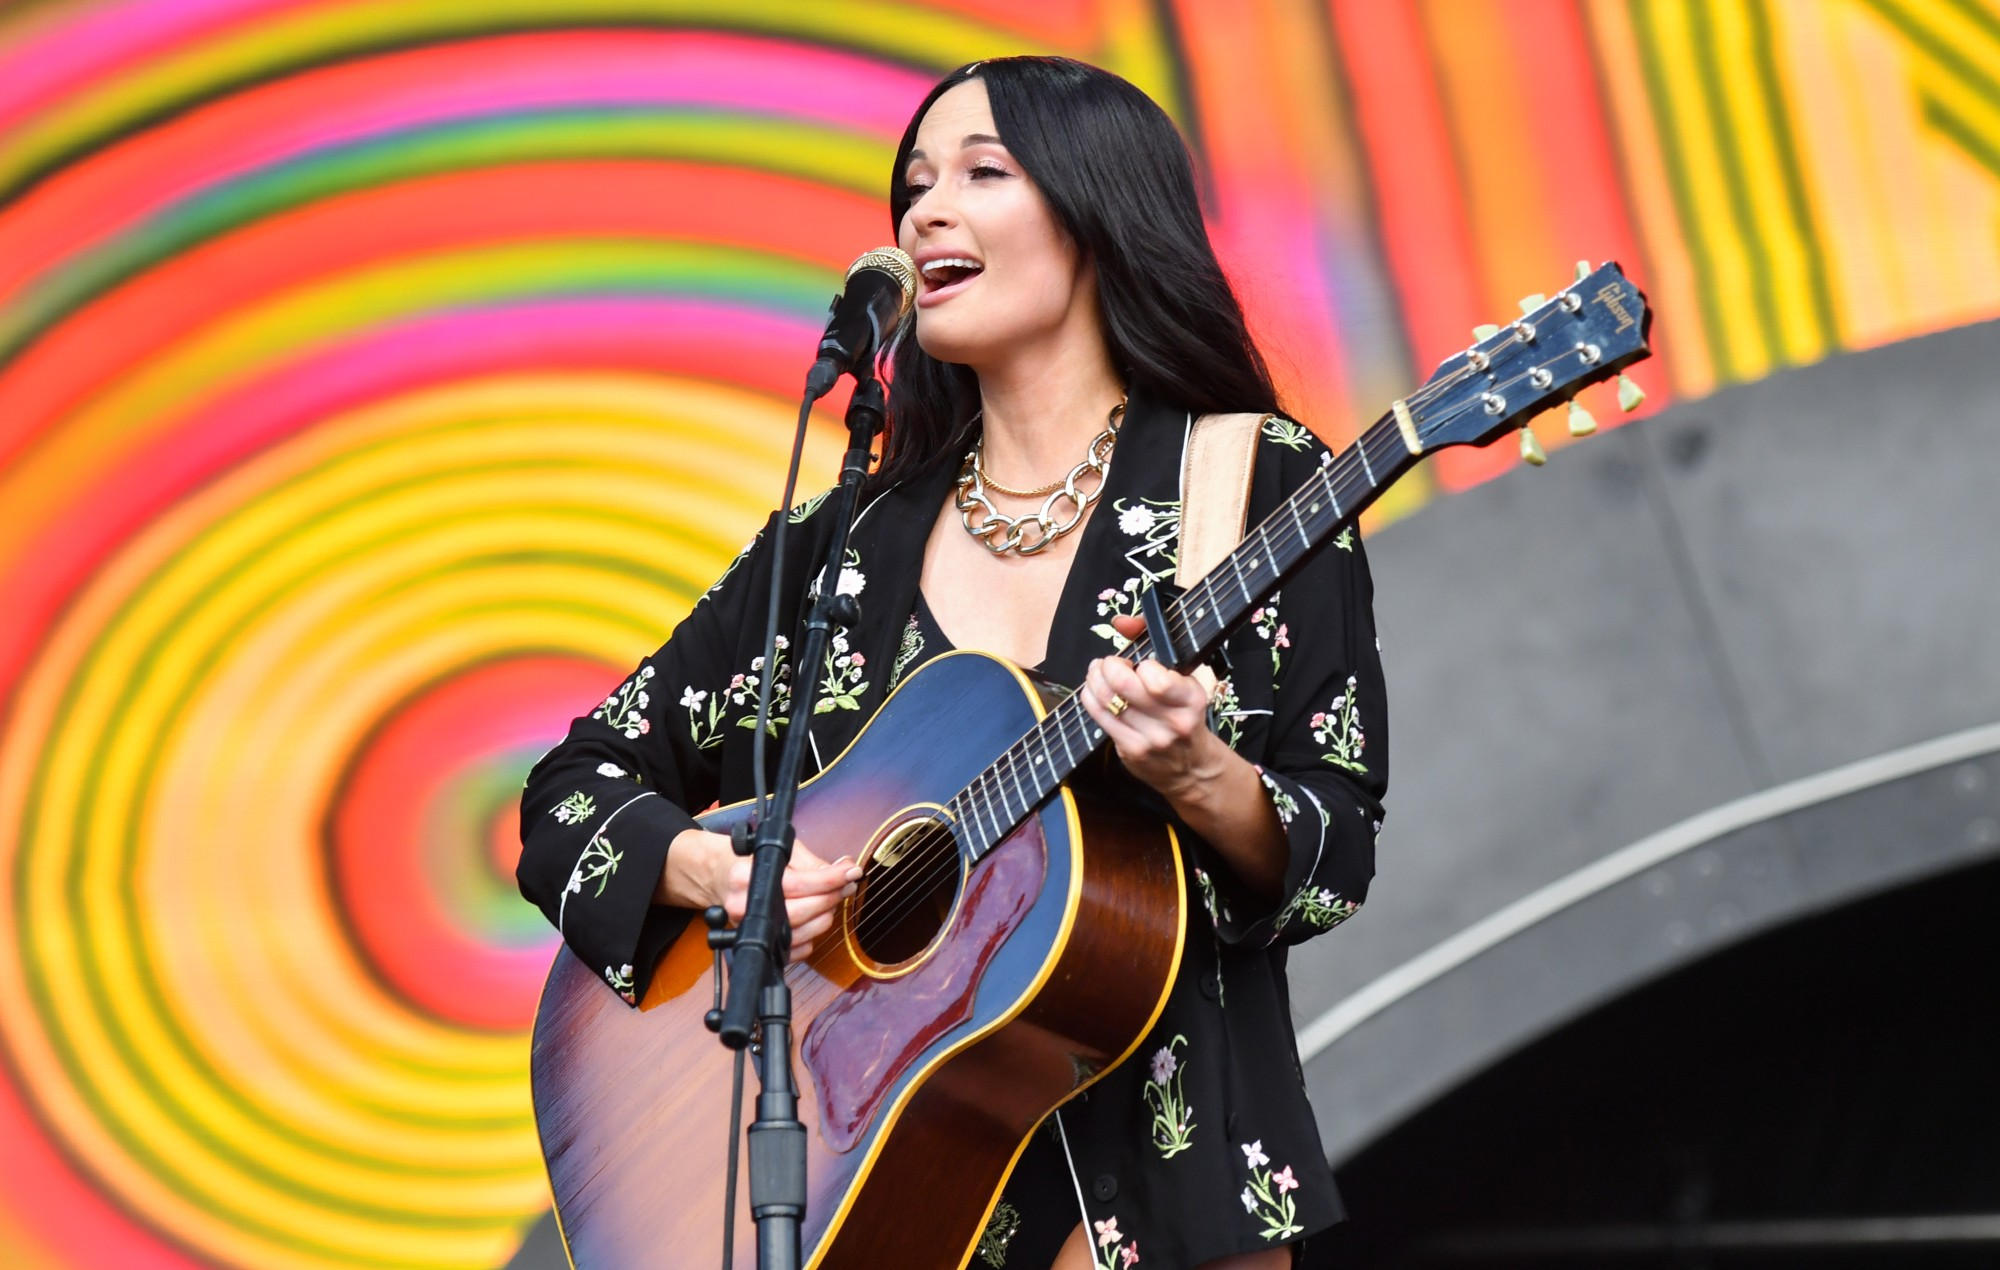 kacey musgraves studio ghibli dub earwing and the witch